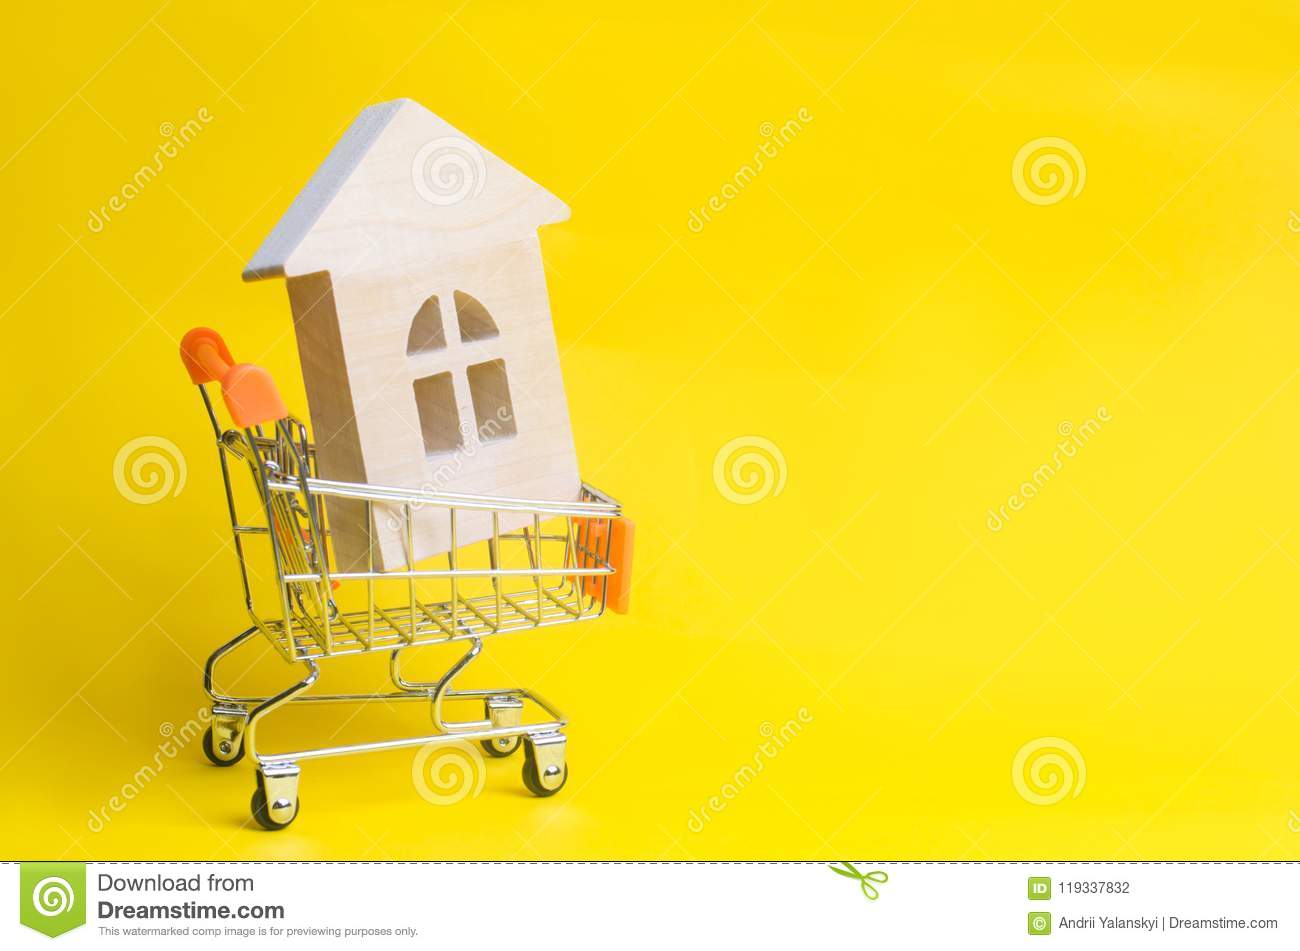 Affordable housing or how to take a mortgage to a young family